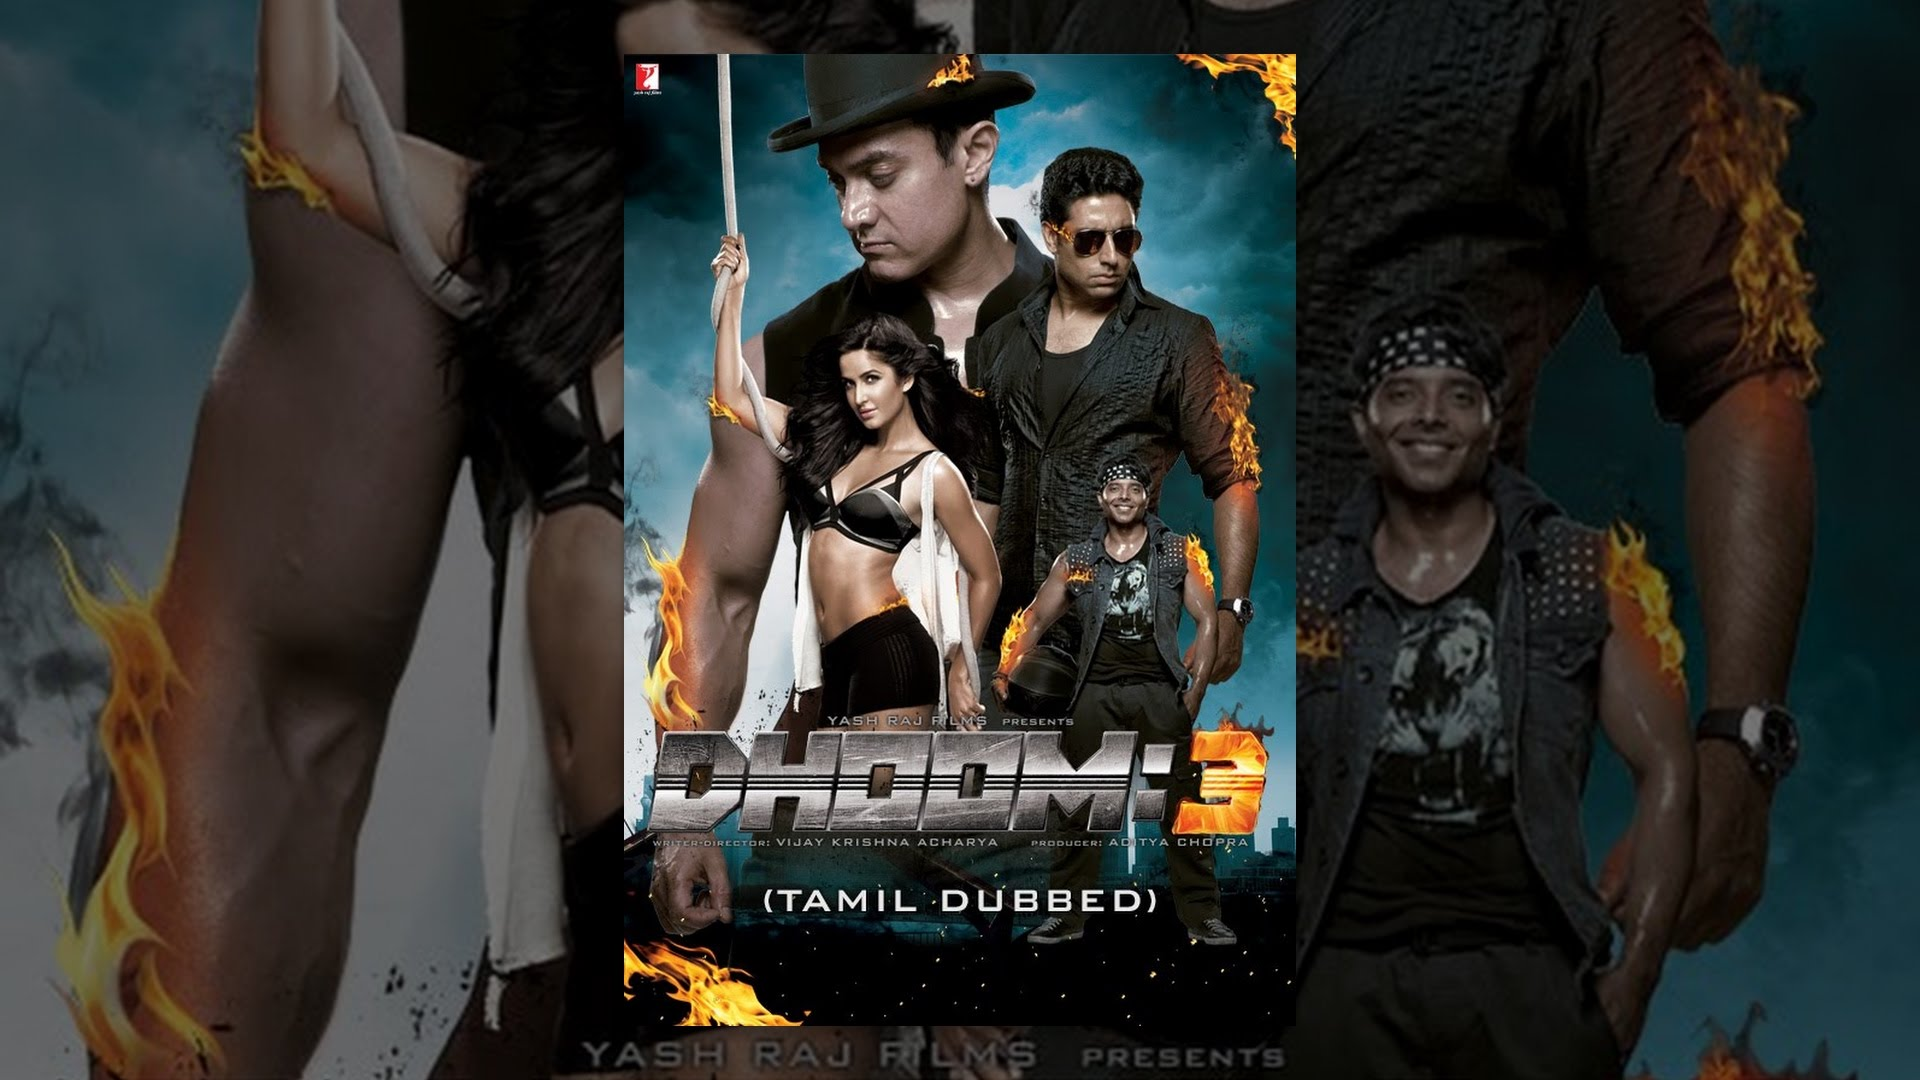 Download DHOOM:3 (Tamil Dubbed)